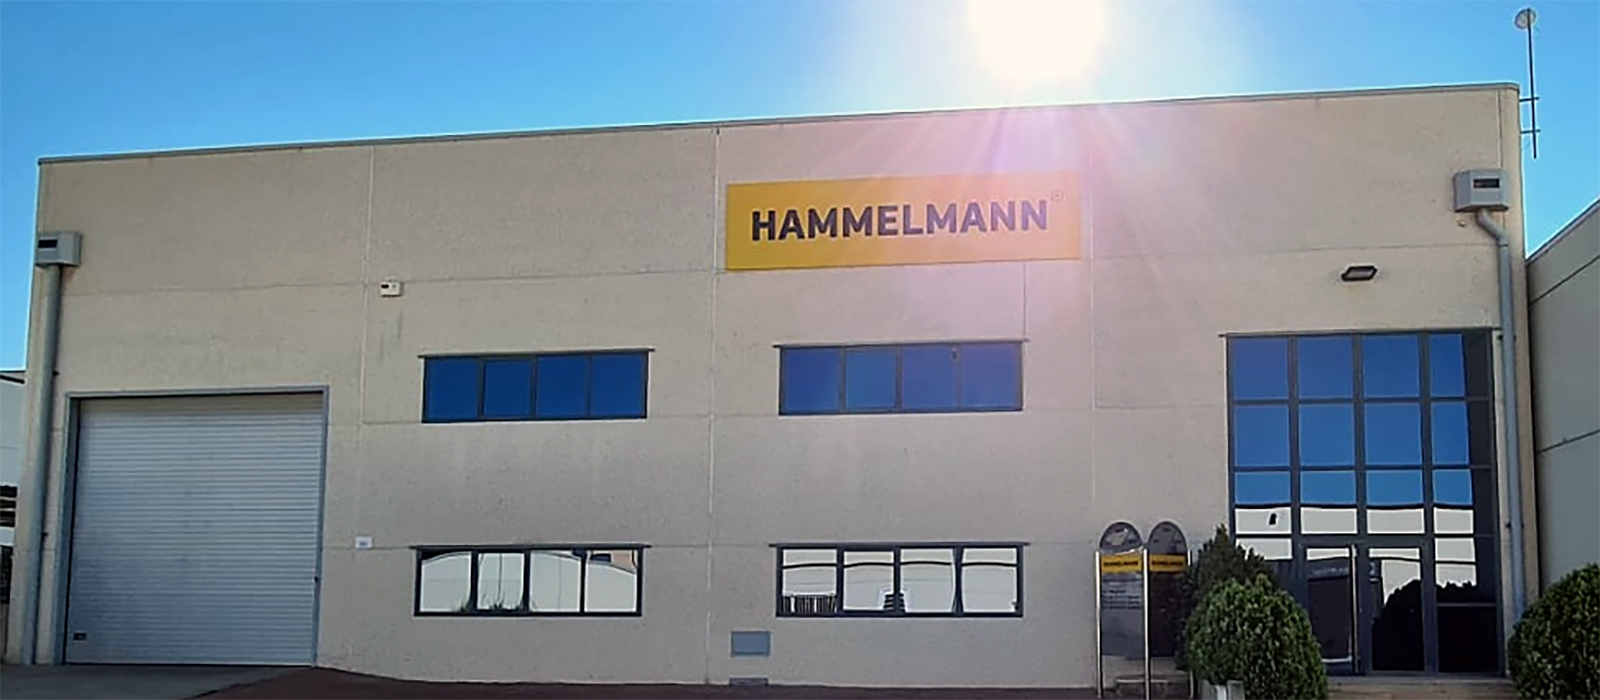 Hammelmann SL aquajet partner distributor hydrodemolition equipment